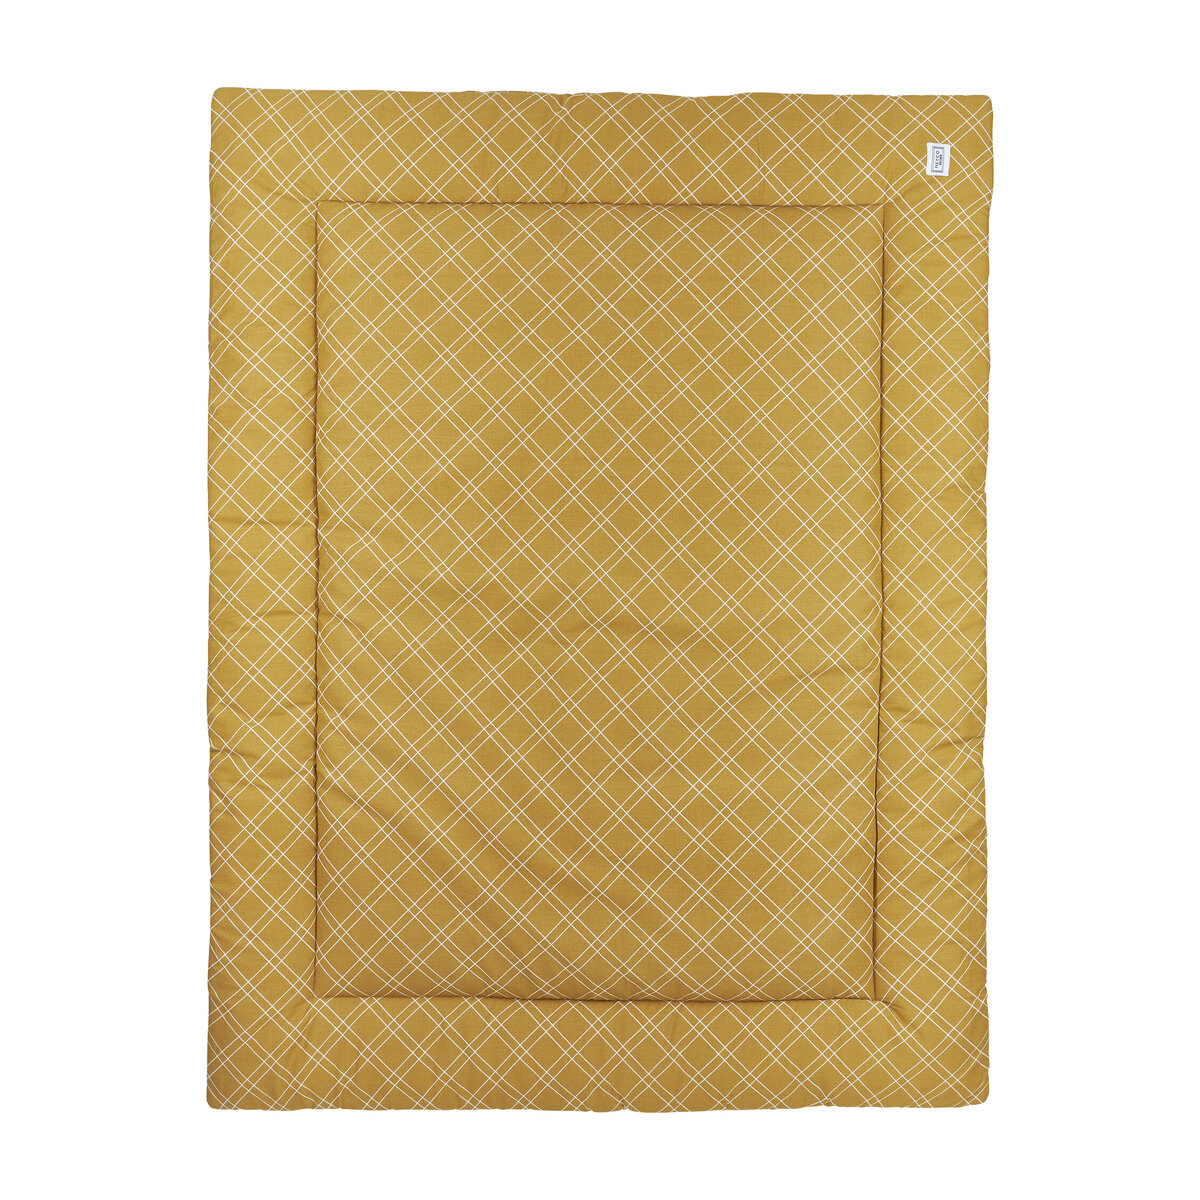 Meyco Boxkleed Double Diamond 80x100 cm. 80x100 - Honey Gold